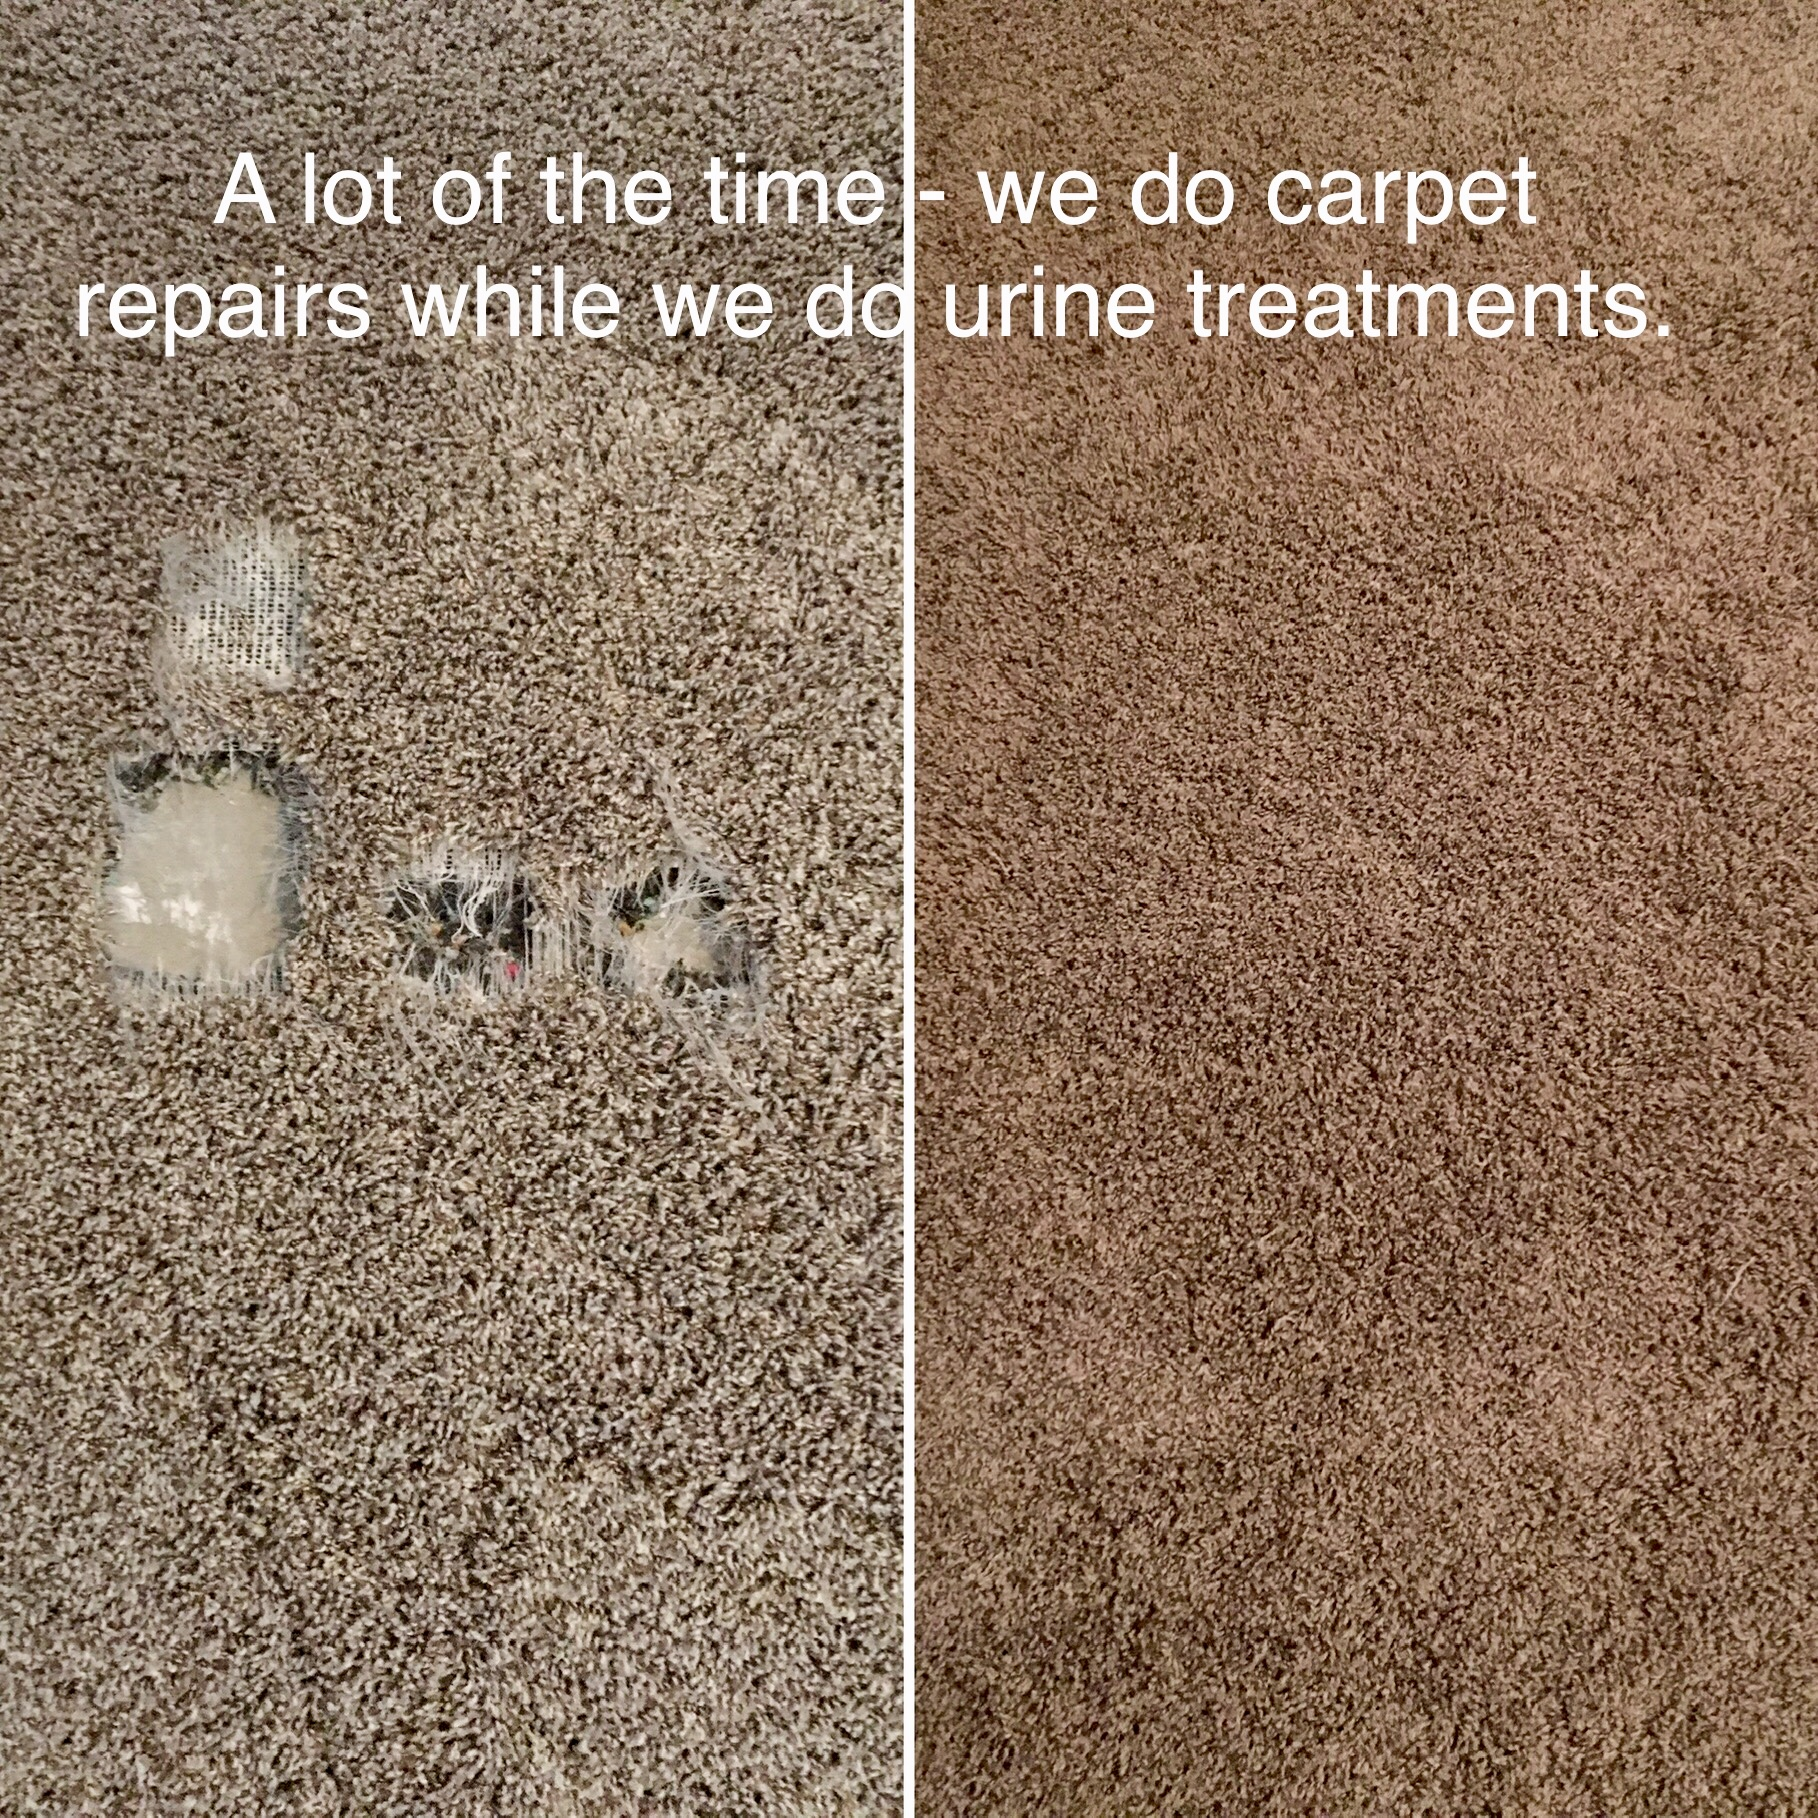 Carpet Repair Fix Pet damage